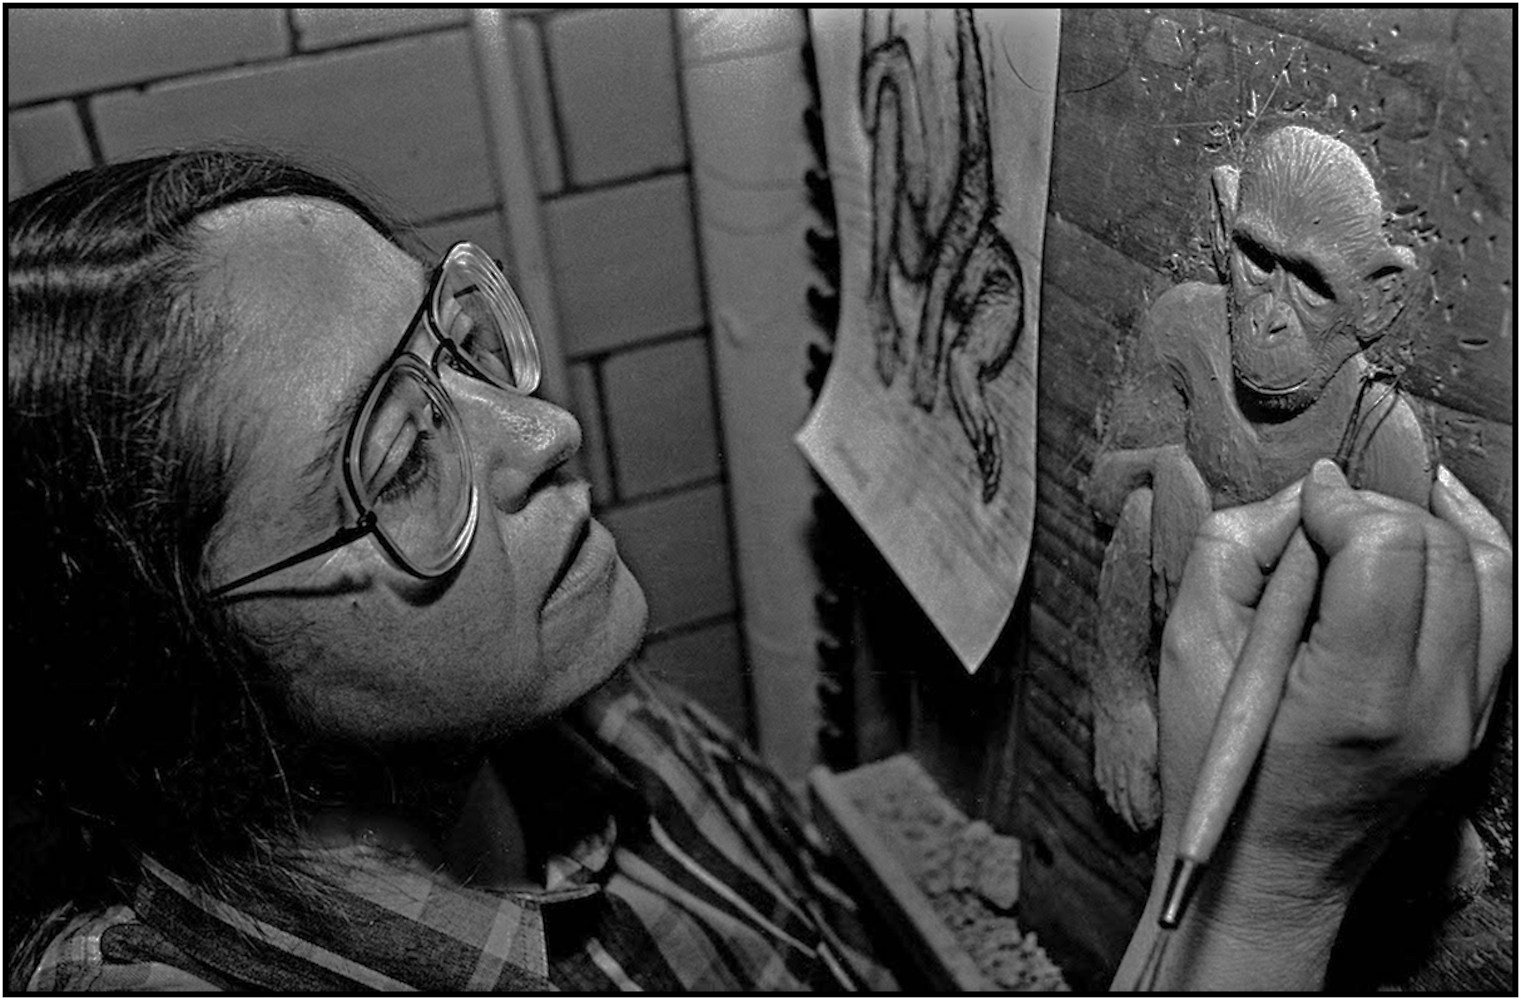 Joyce Cloughly of the Museum of Natural History works on her sculpture for display in the Hall of Human Biology, Manhattan.1993